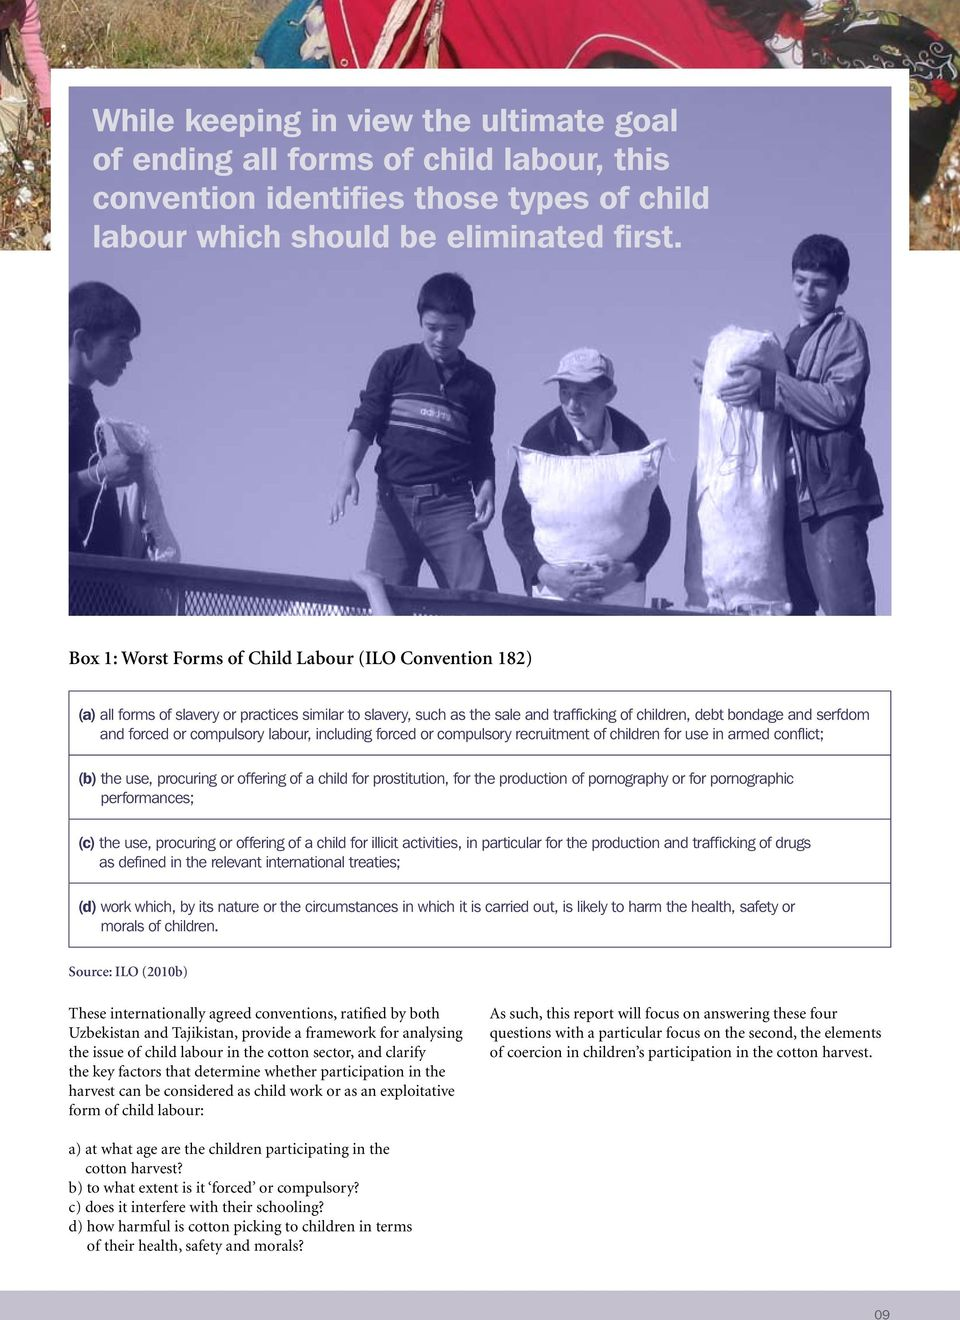 compulsory labour, including forced or compulsory recruitment of children for use in armed conflict; (b) the use, procuring or offering of a child for prostitution, for the production of pornography